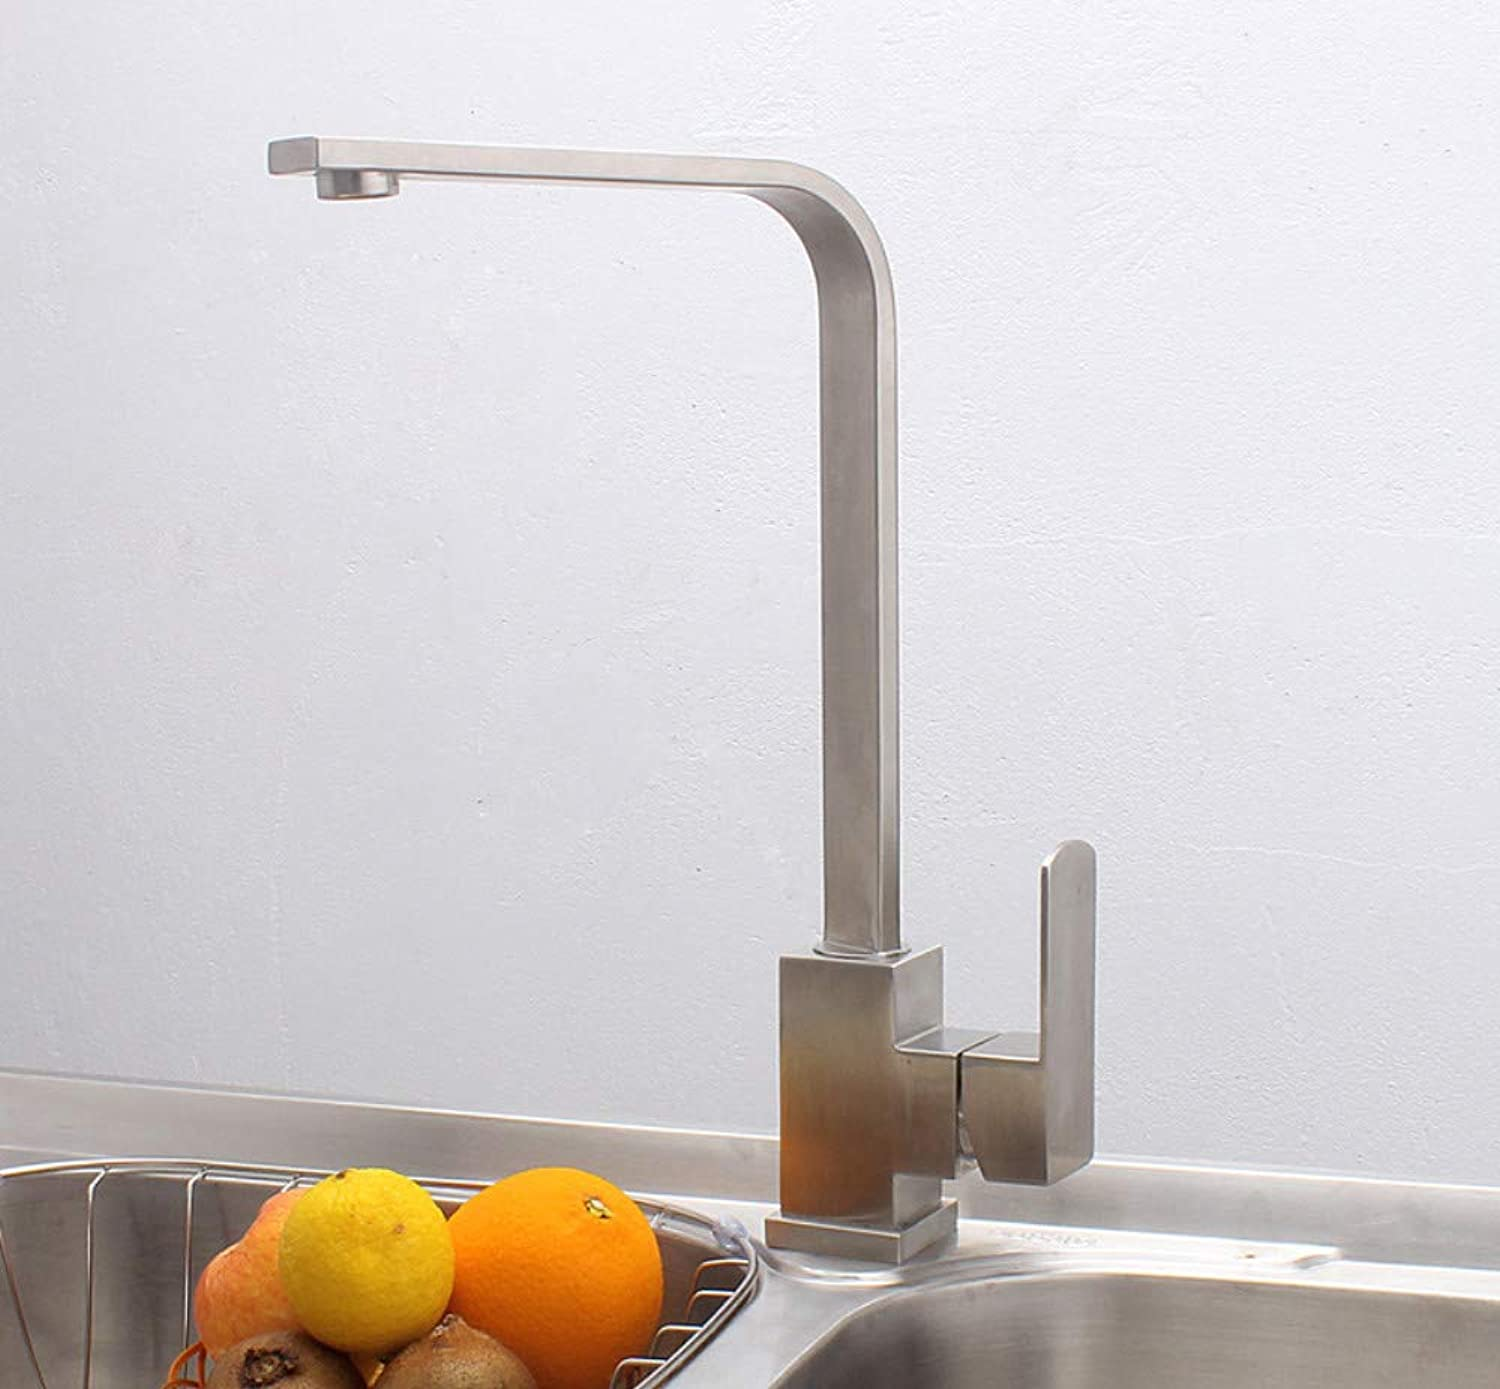 Stainless Steel Faucet Square Kitchen Faucet Hot and Cold Water Sink Sink Mixing Valve